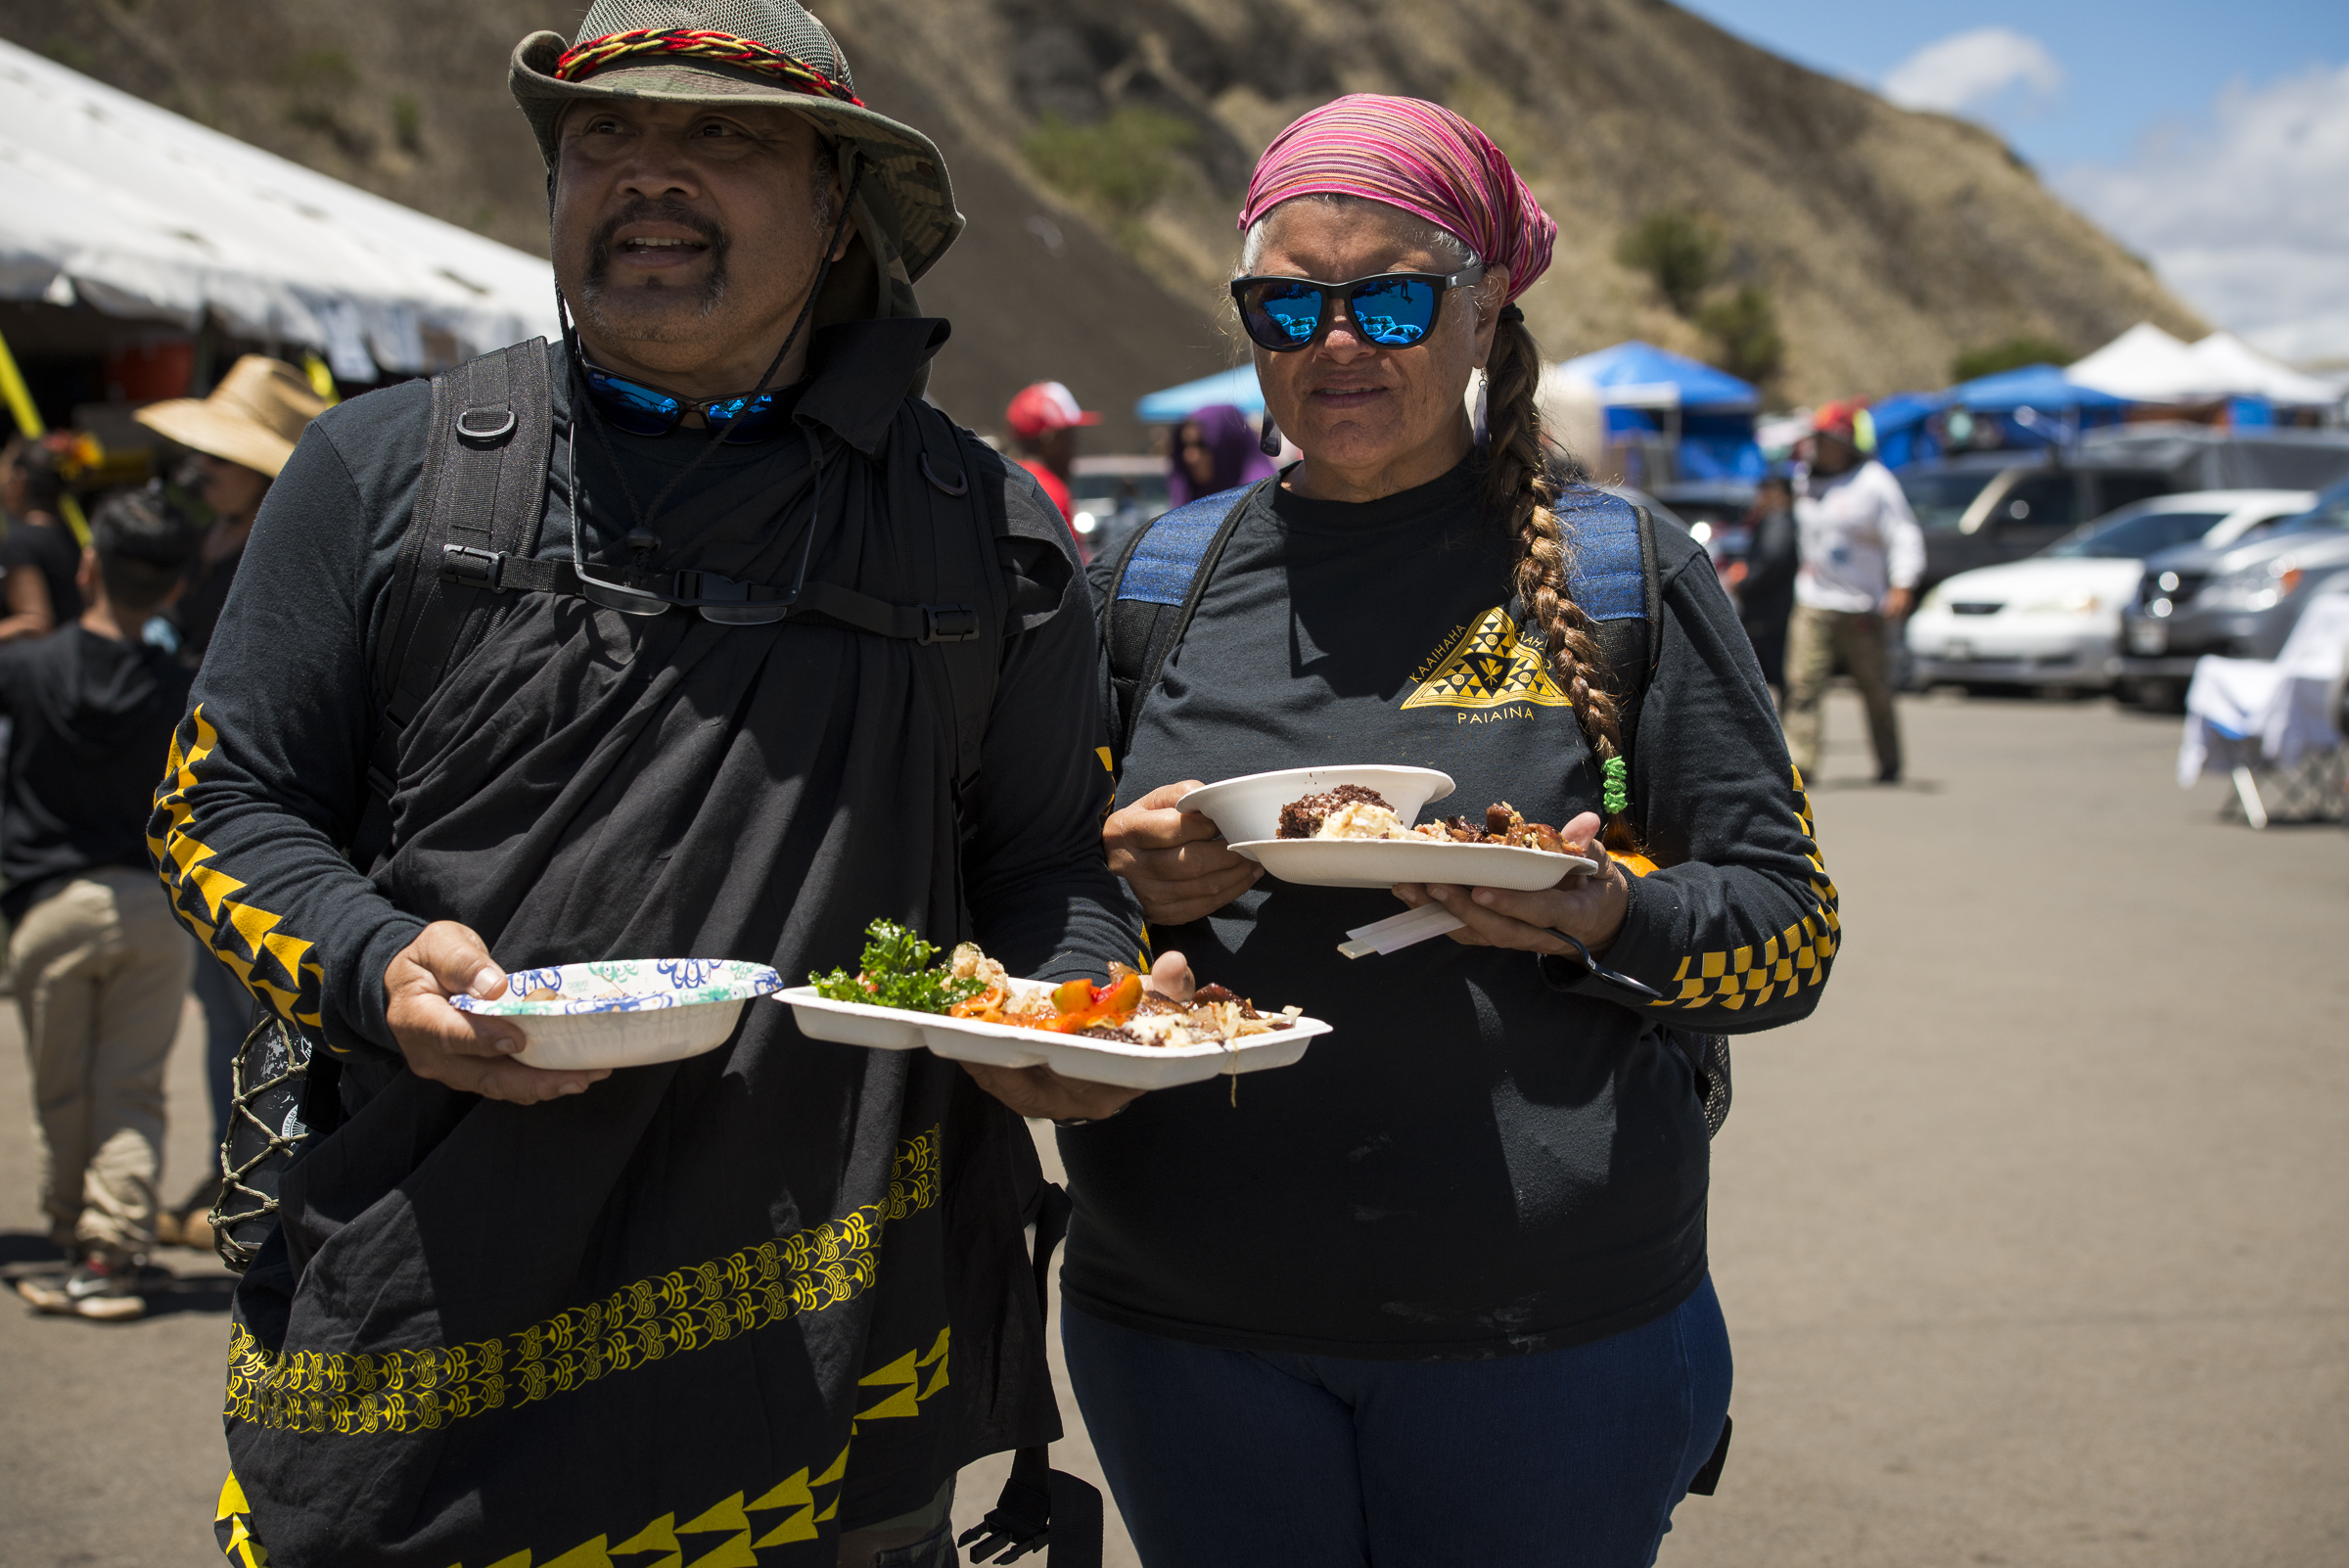 <p>Lunchtime for two of the activists who have congregated to try to prevent construction of another observatory near the summit of Mauna Kea, which some Native Hawaiians consider sacred.</p>